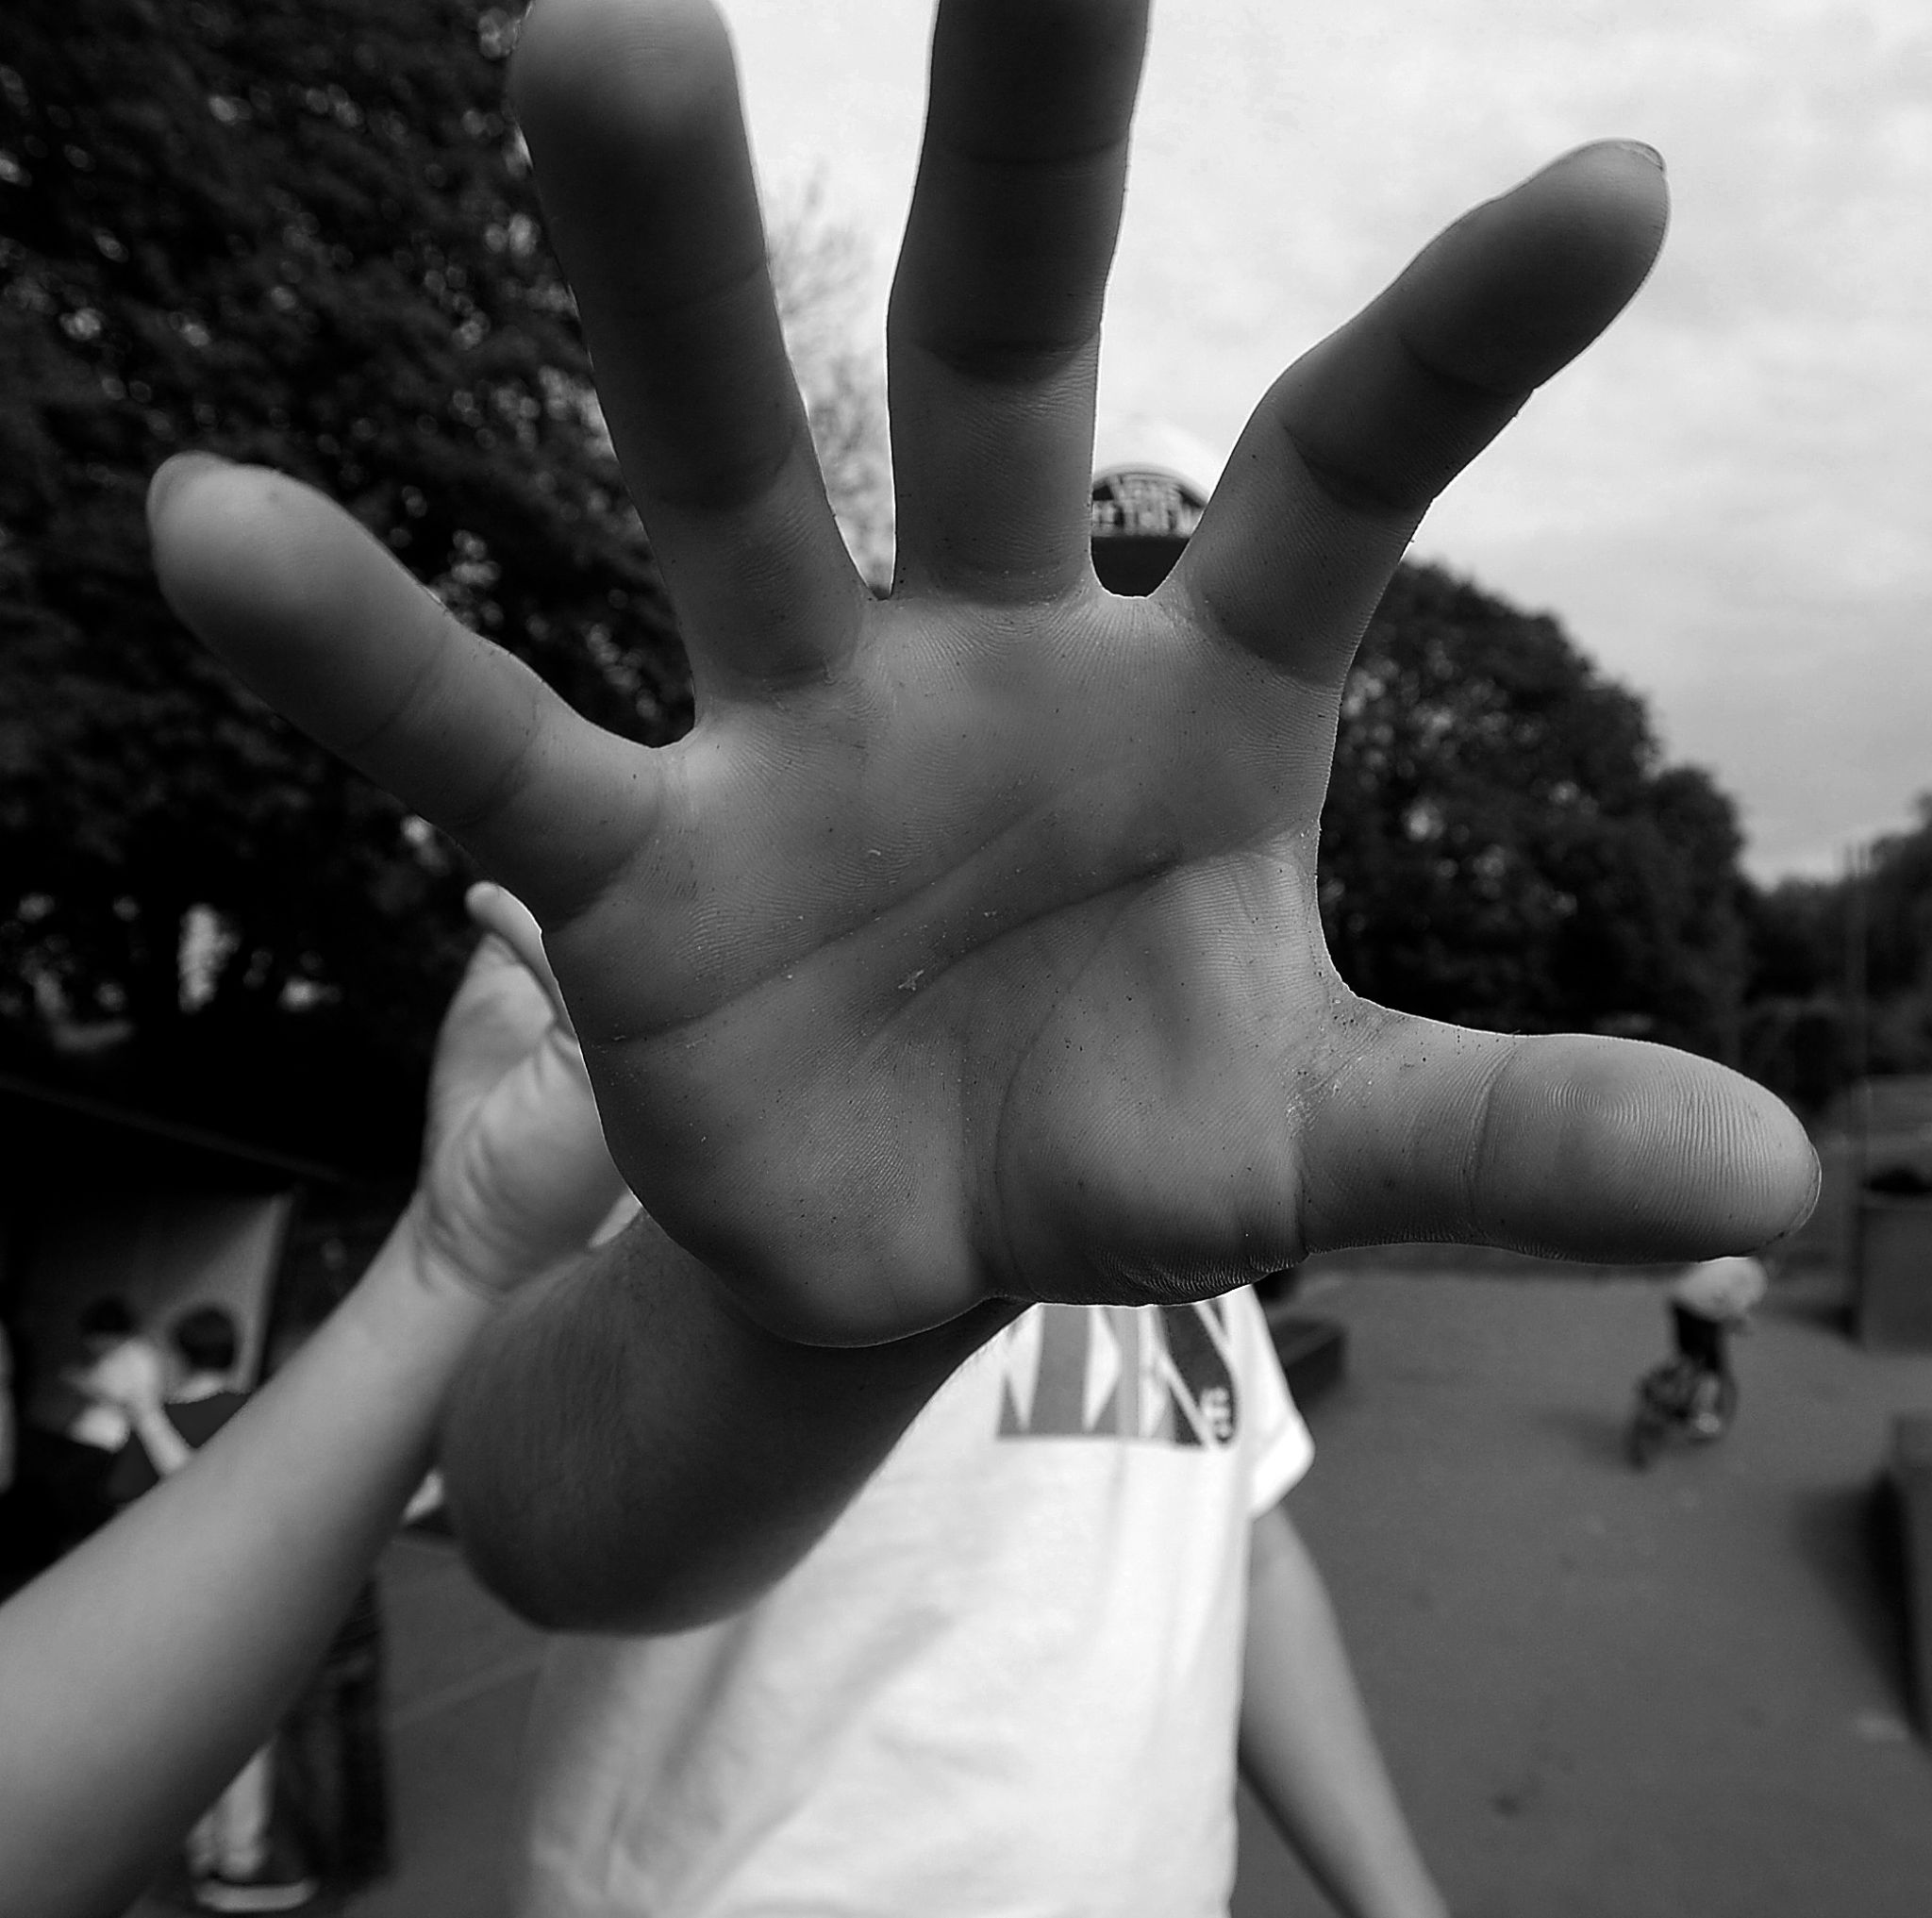 hand by Michael Parmenter-Pluck